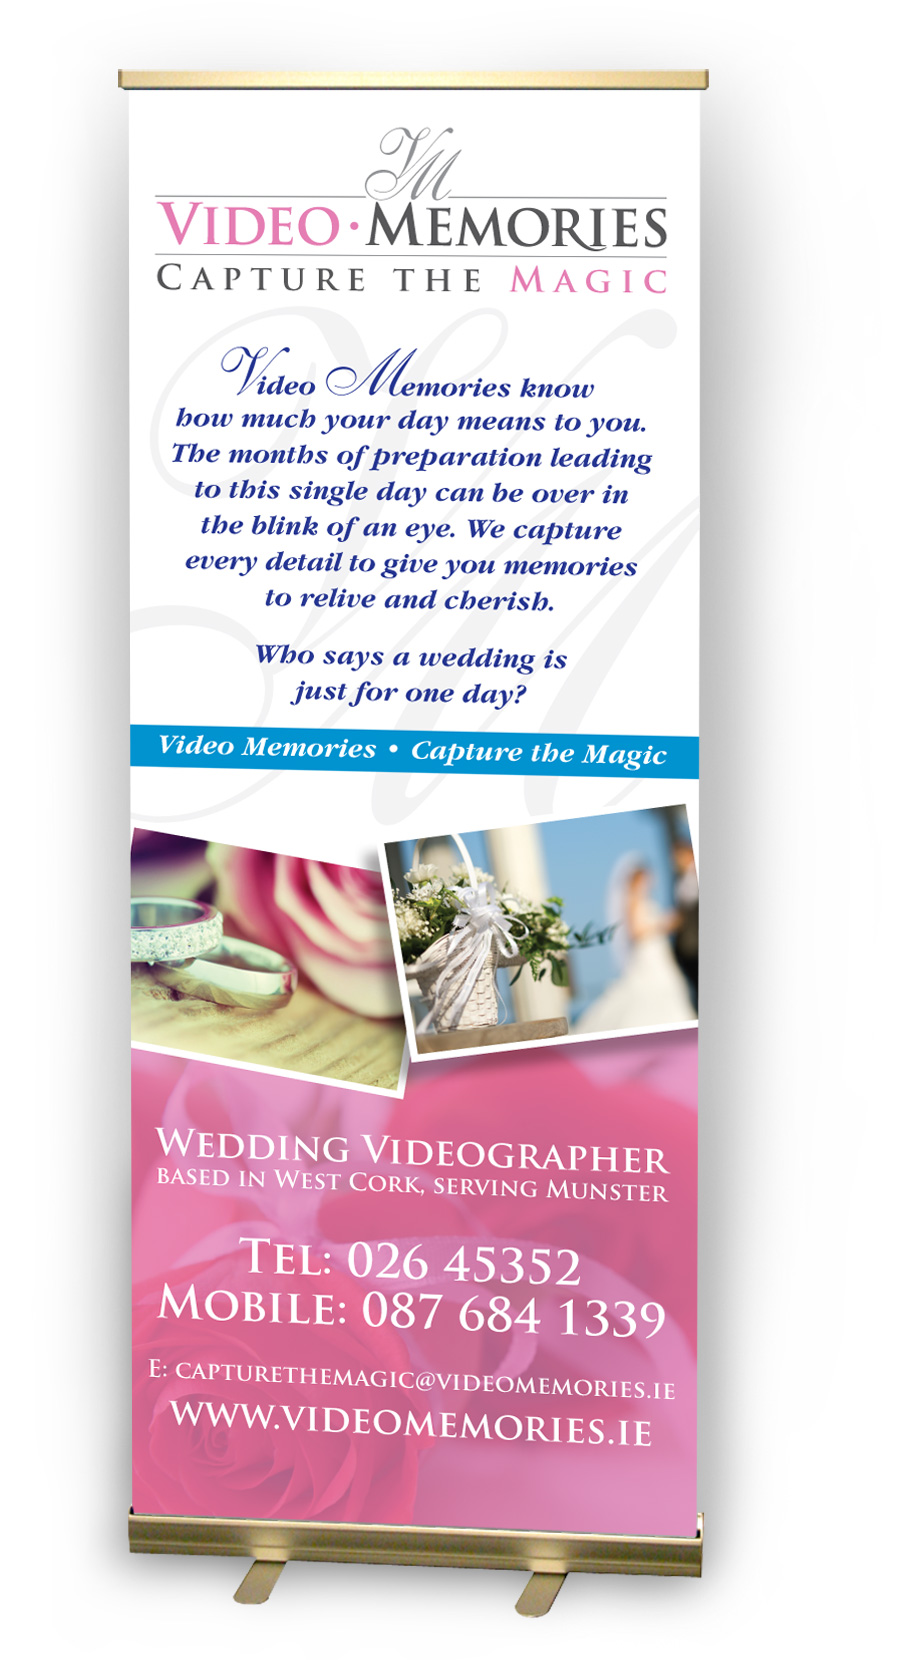 Video Memories Pull-Up Banner Design